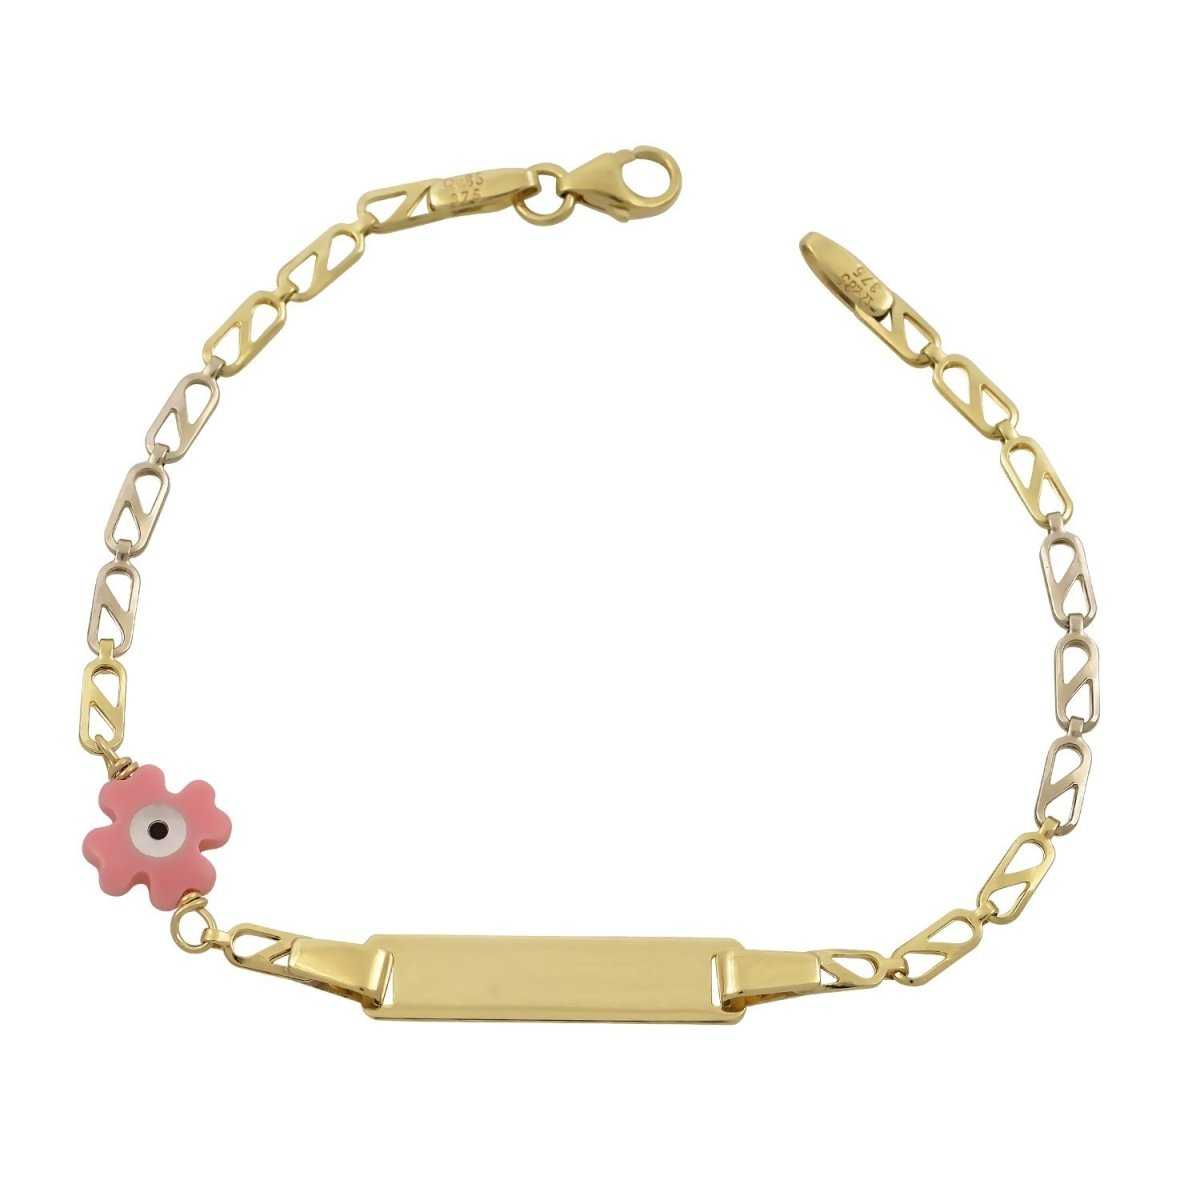 Children's Bracelet T120 Identity Gold with Cross and Eye K9 - Goldy Jewelry Store